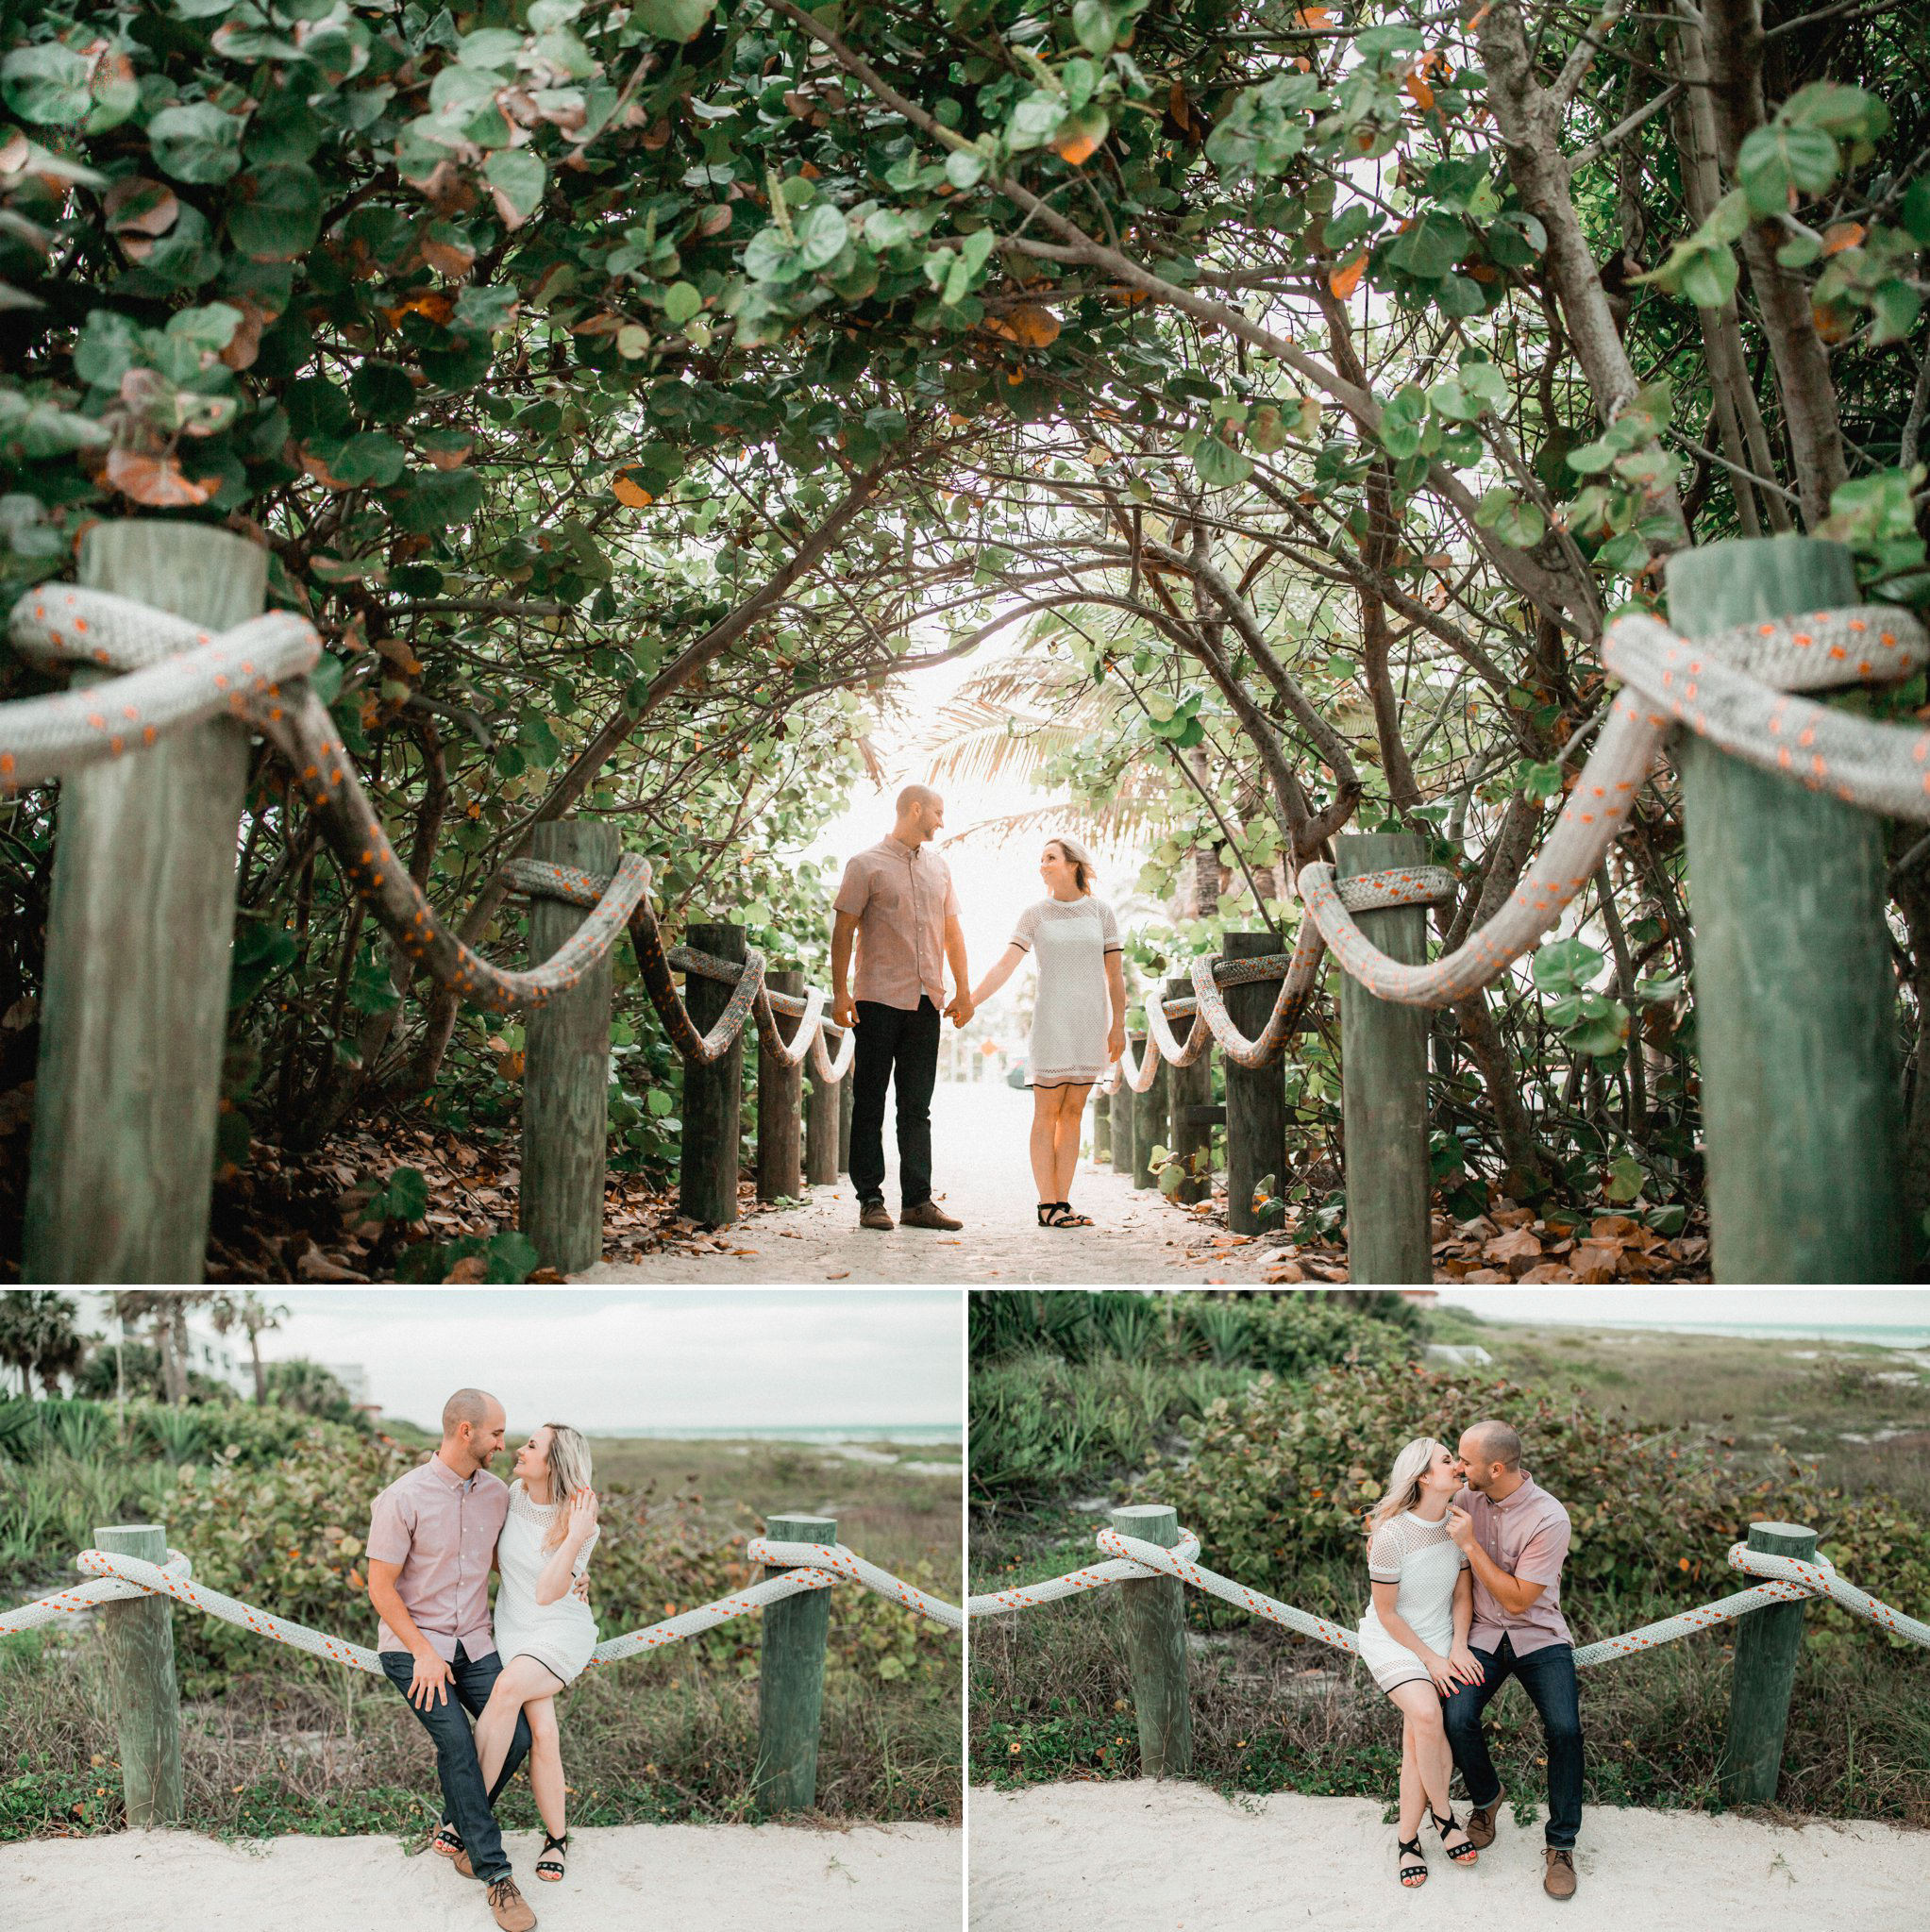 Tommy + Courtney's Cocoa Beach engagement || Casual boho surf style engagement outfit inspiration - she wore a 60s mod white shift dress with black sandals; he wore a pink short sleeve button-down shirt, dark jeans and brown leather shoes. || Engagement photography by Shaina DeCiryan Lifestyle Wedding Photography || Book your 2017/2018 Wedding at: ShainaDeCiryan.com @shainadeciryan